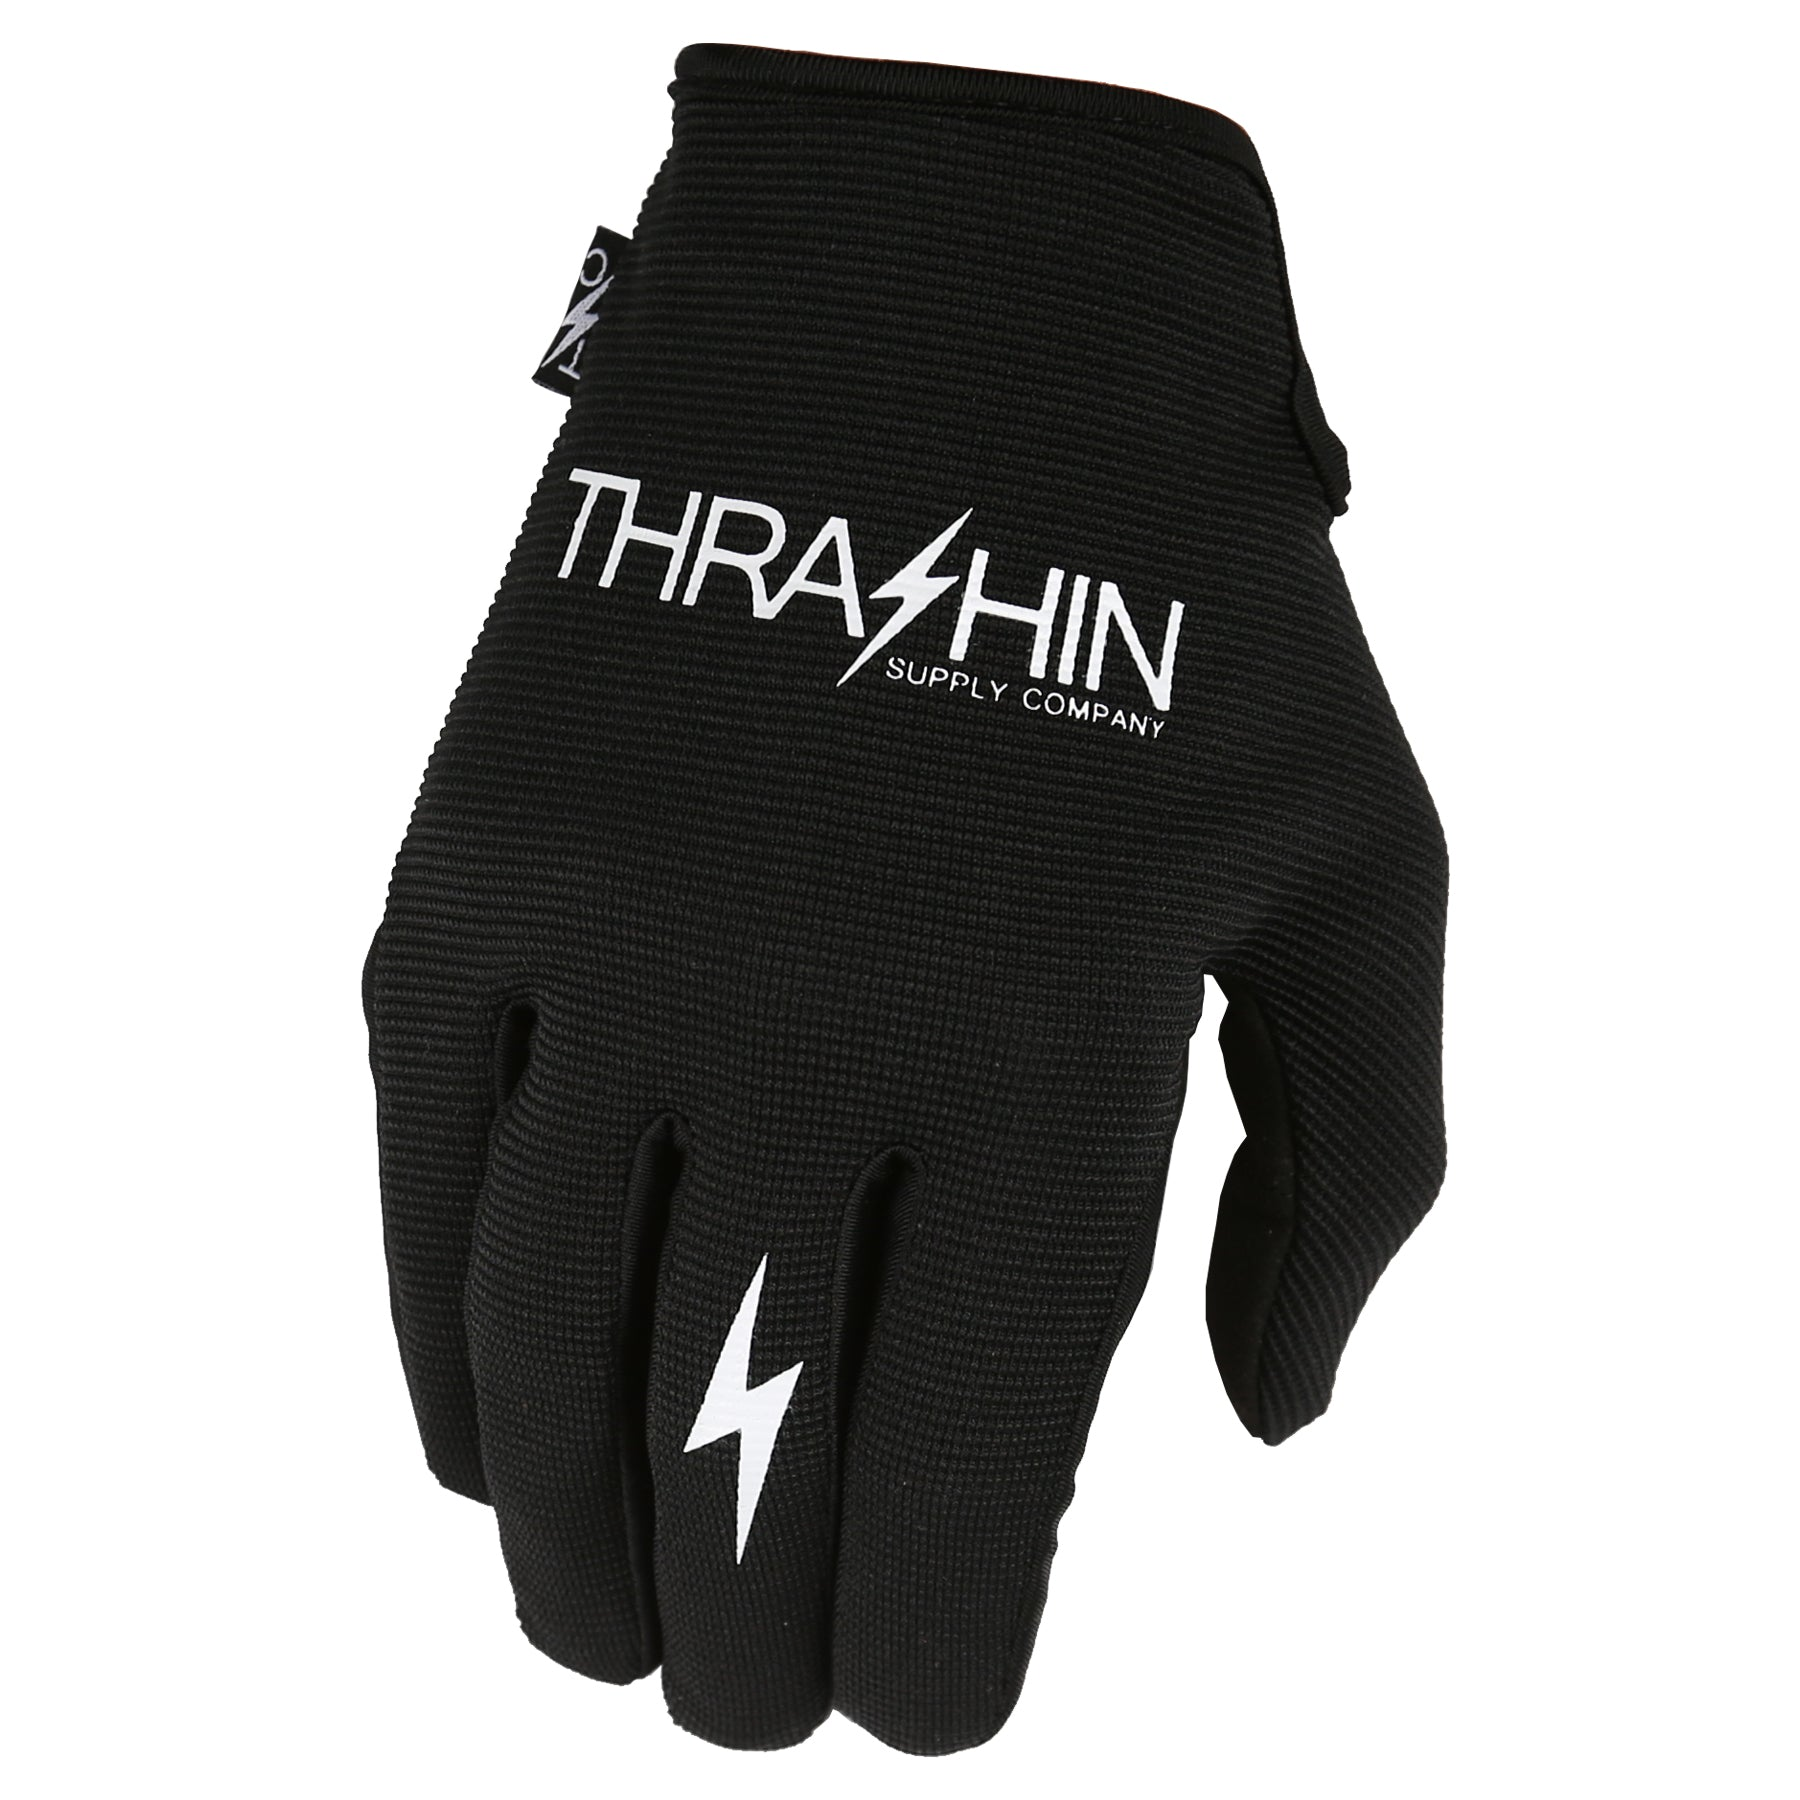 Stealth Glove - Black